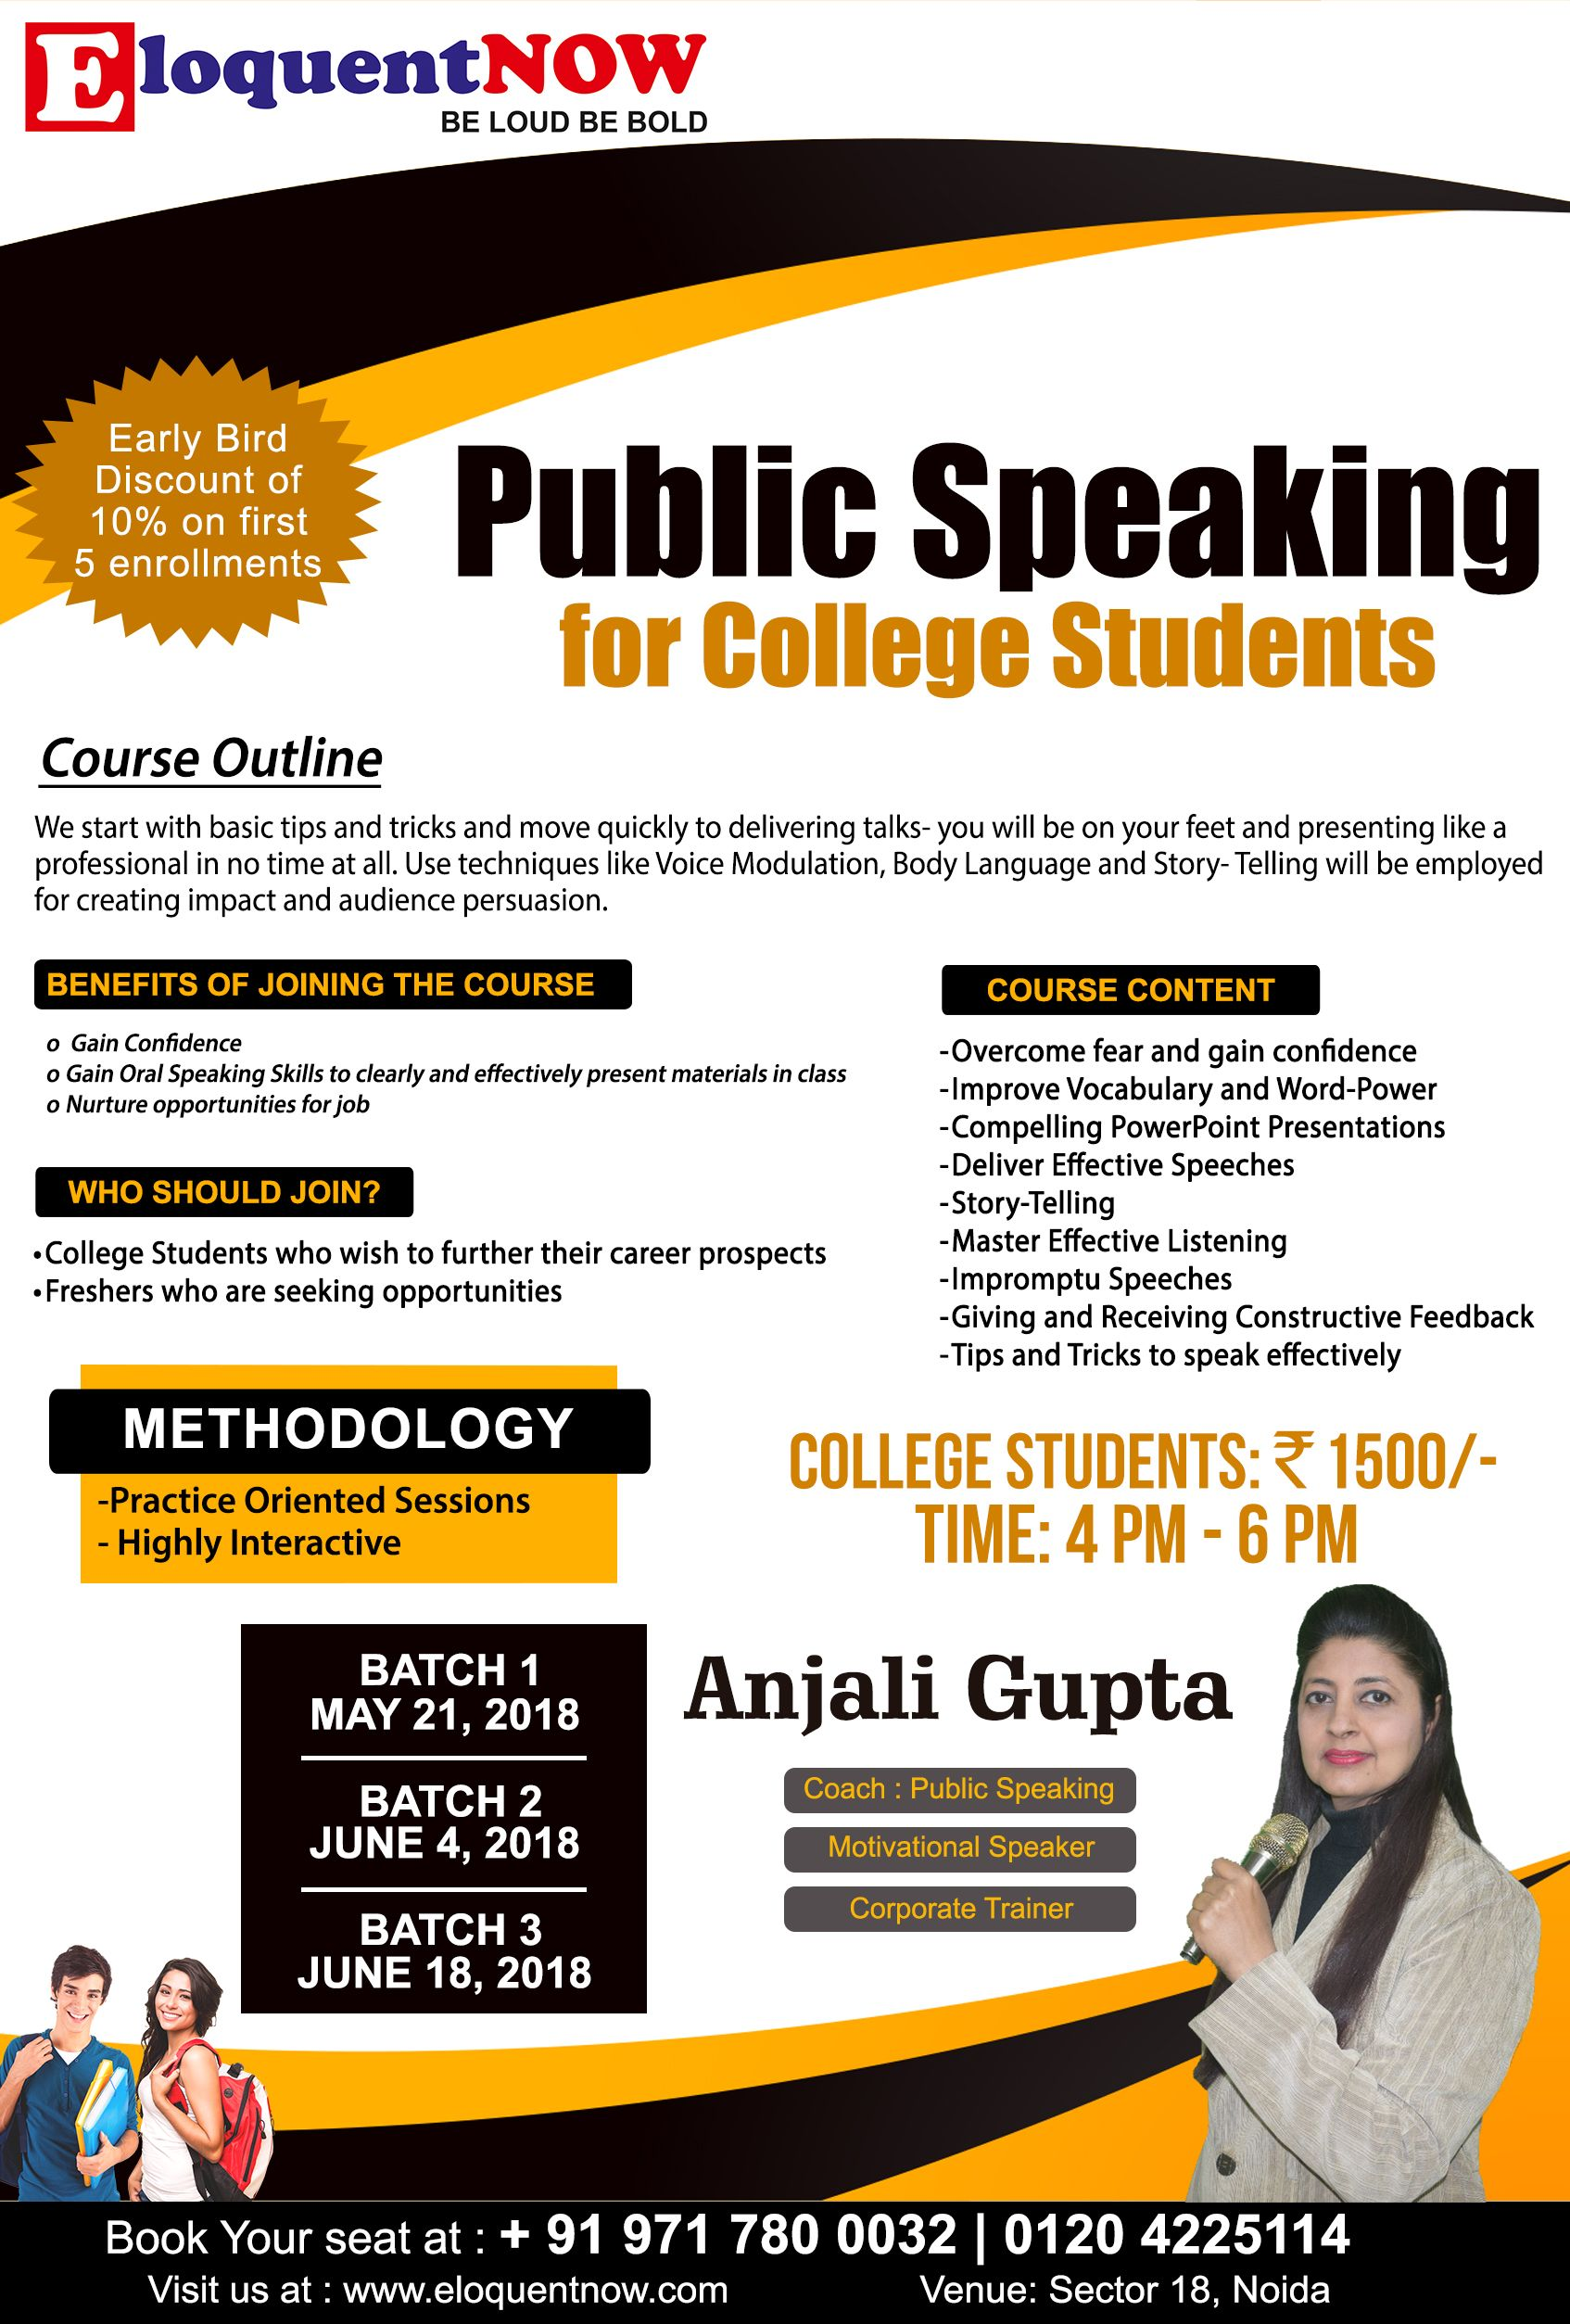 Public Speaking For College Students Early Bird Discount Of 10 On First 5 Enrollments Benefits Of Public Speaking Public Speaking Tips Speaking Skills